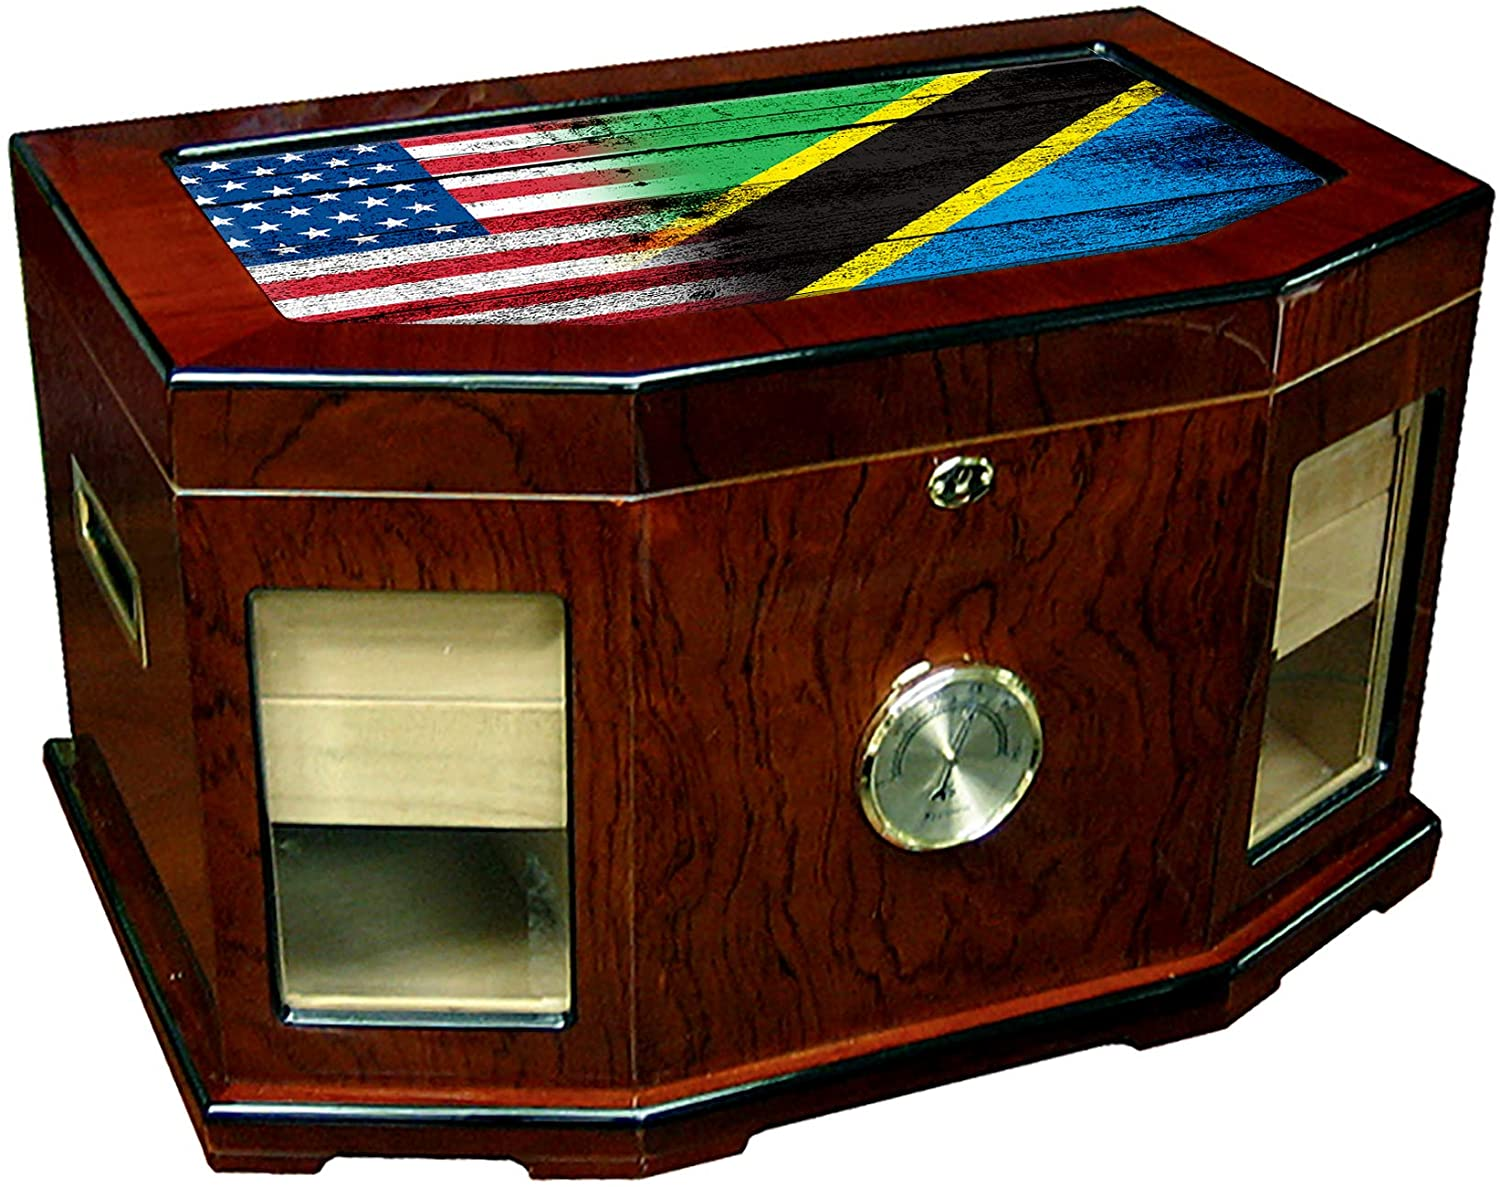 Large Premium Desktop Humidor - Glass Top - Flag of Tanzania (Tanzanian) - Wood with USA Flag - 300 Cigar Capacity - Cedar Lined with Two humidifiers & Large Front Mounted Hygrometer.